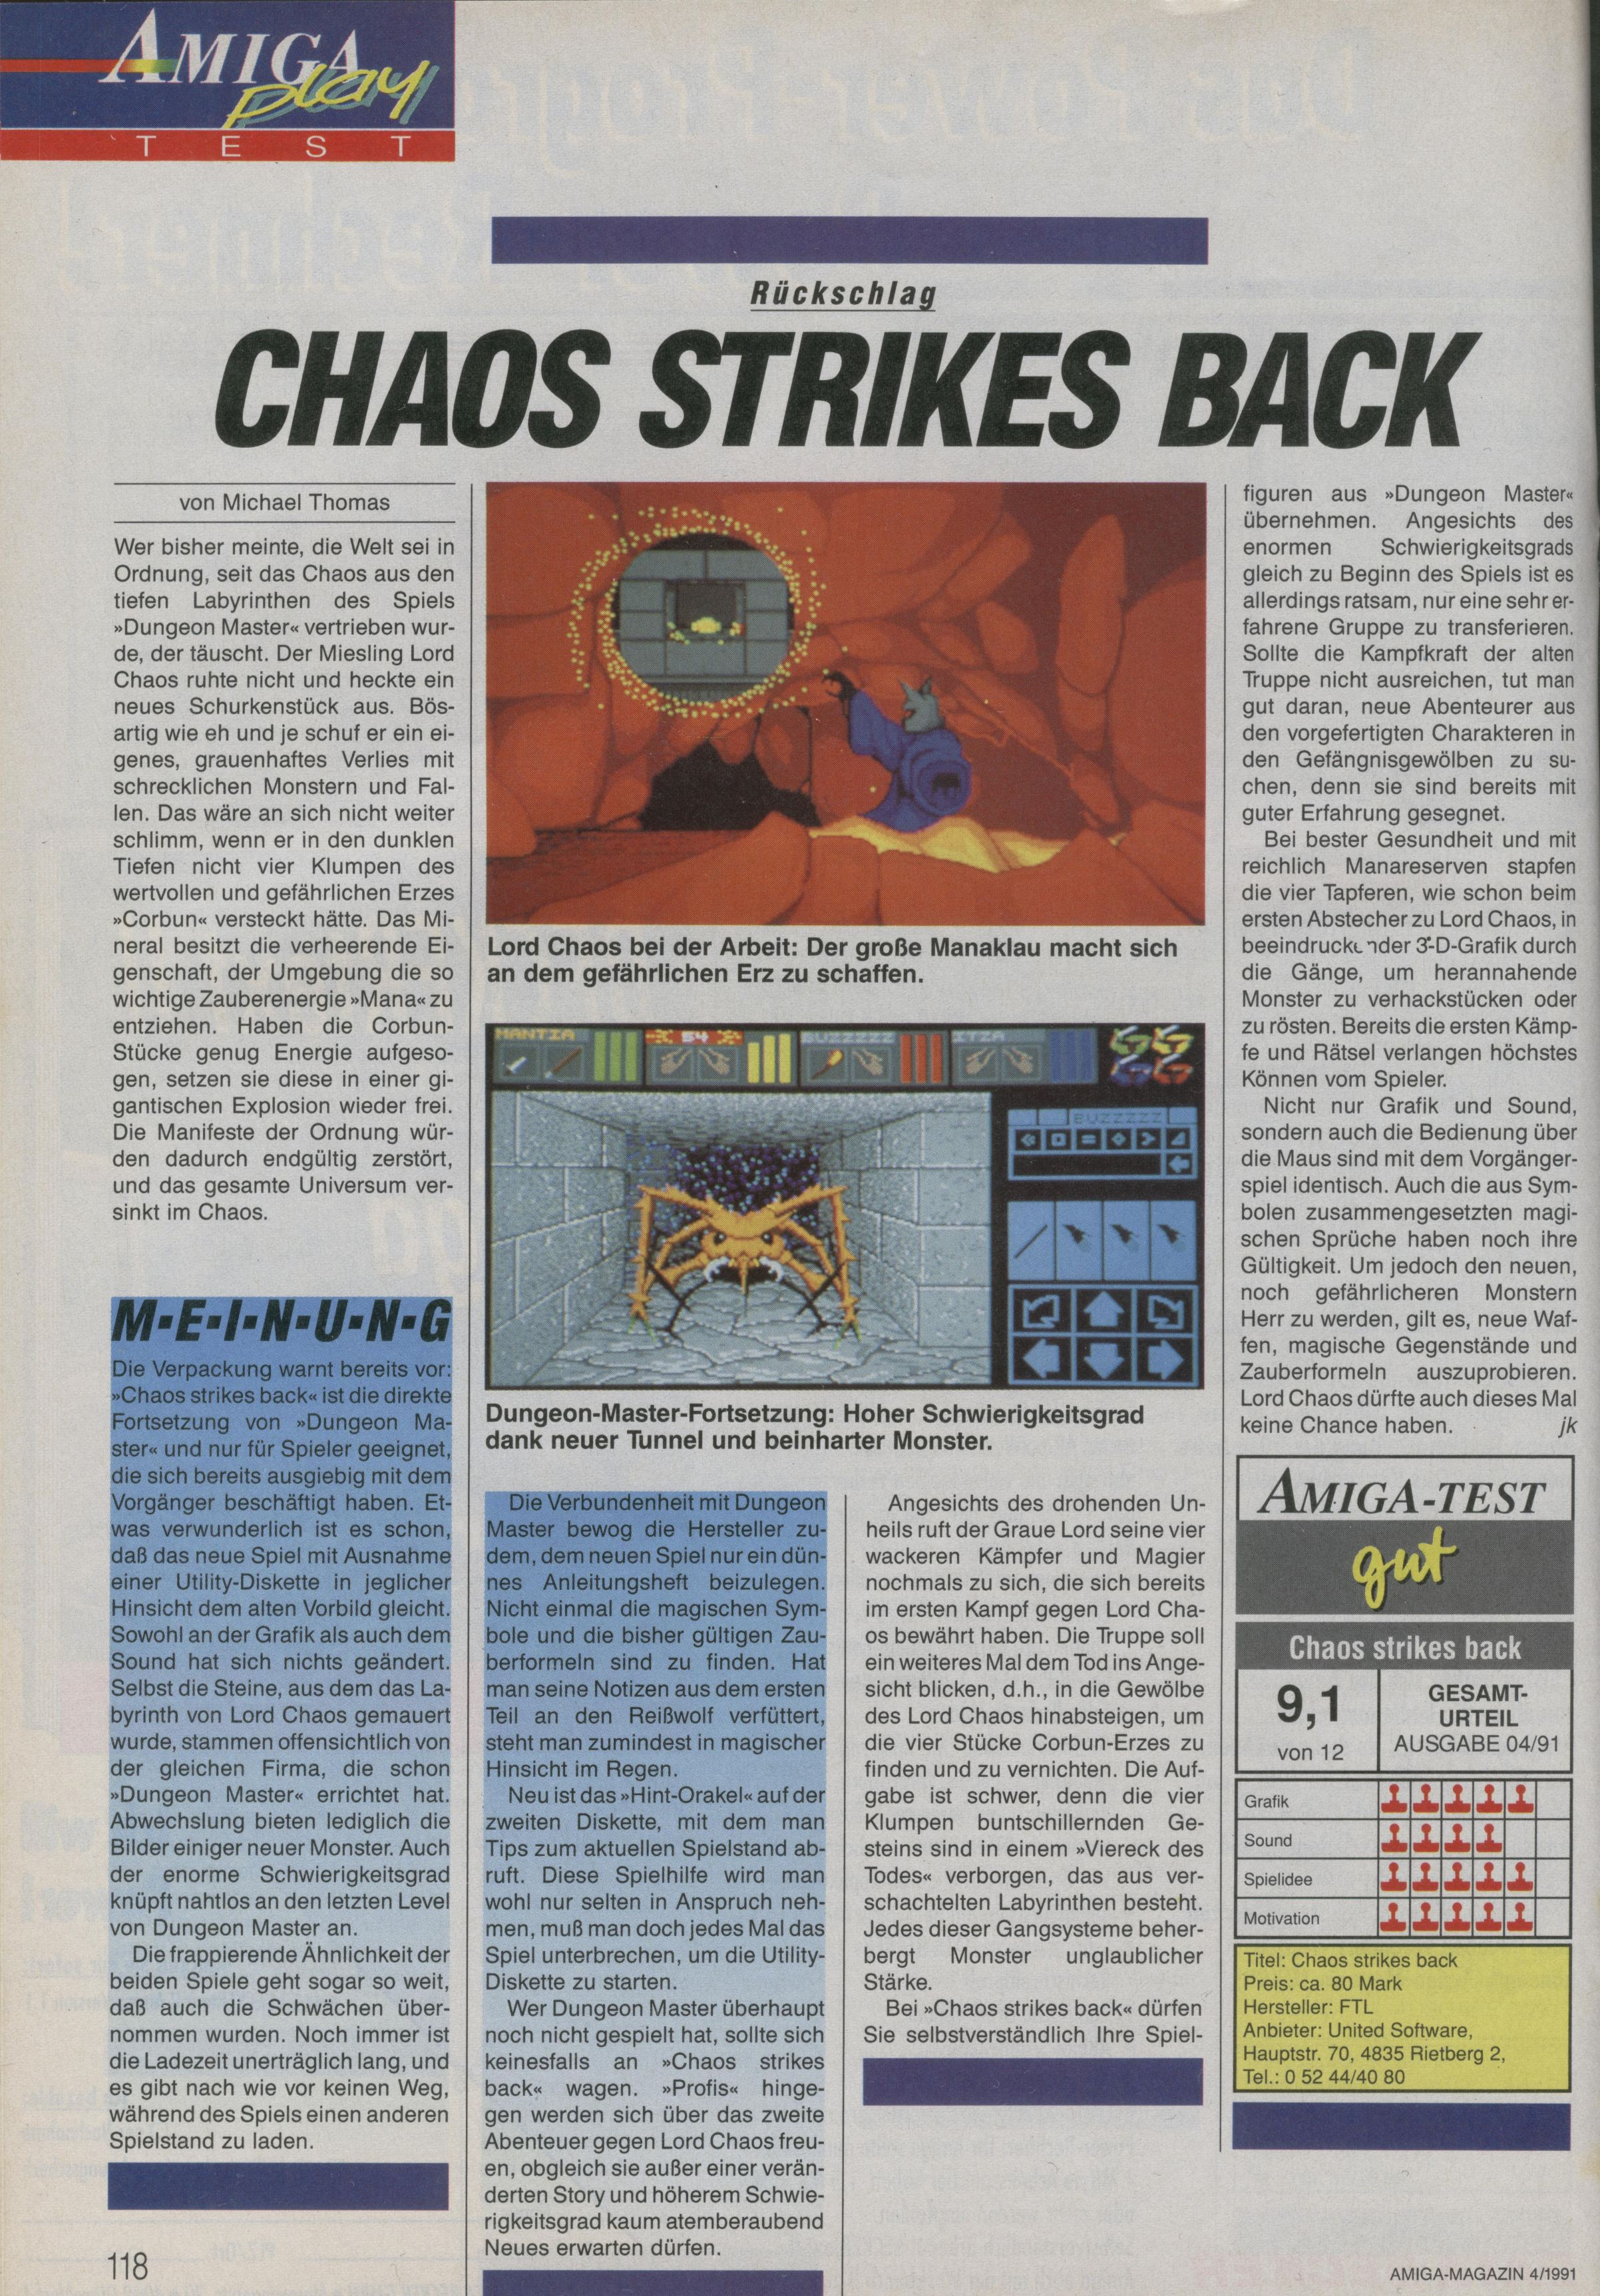 Chaos Strikes Back for Atari ST Review published in German magazine 'Amiga Magazin', April 1991, Page 118